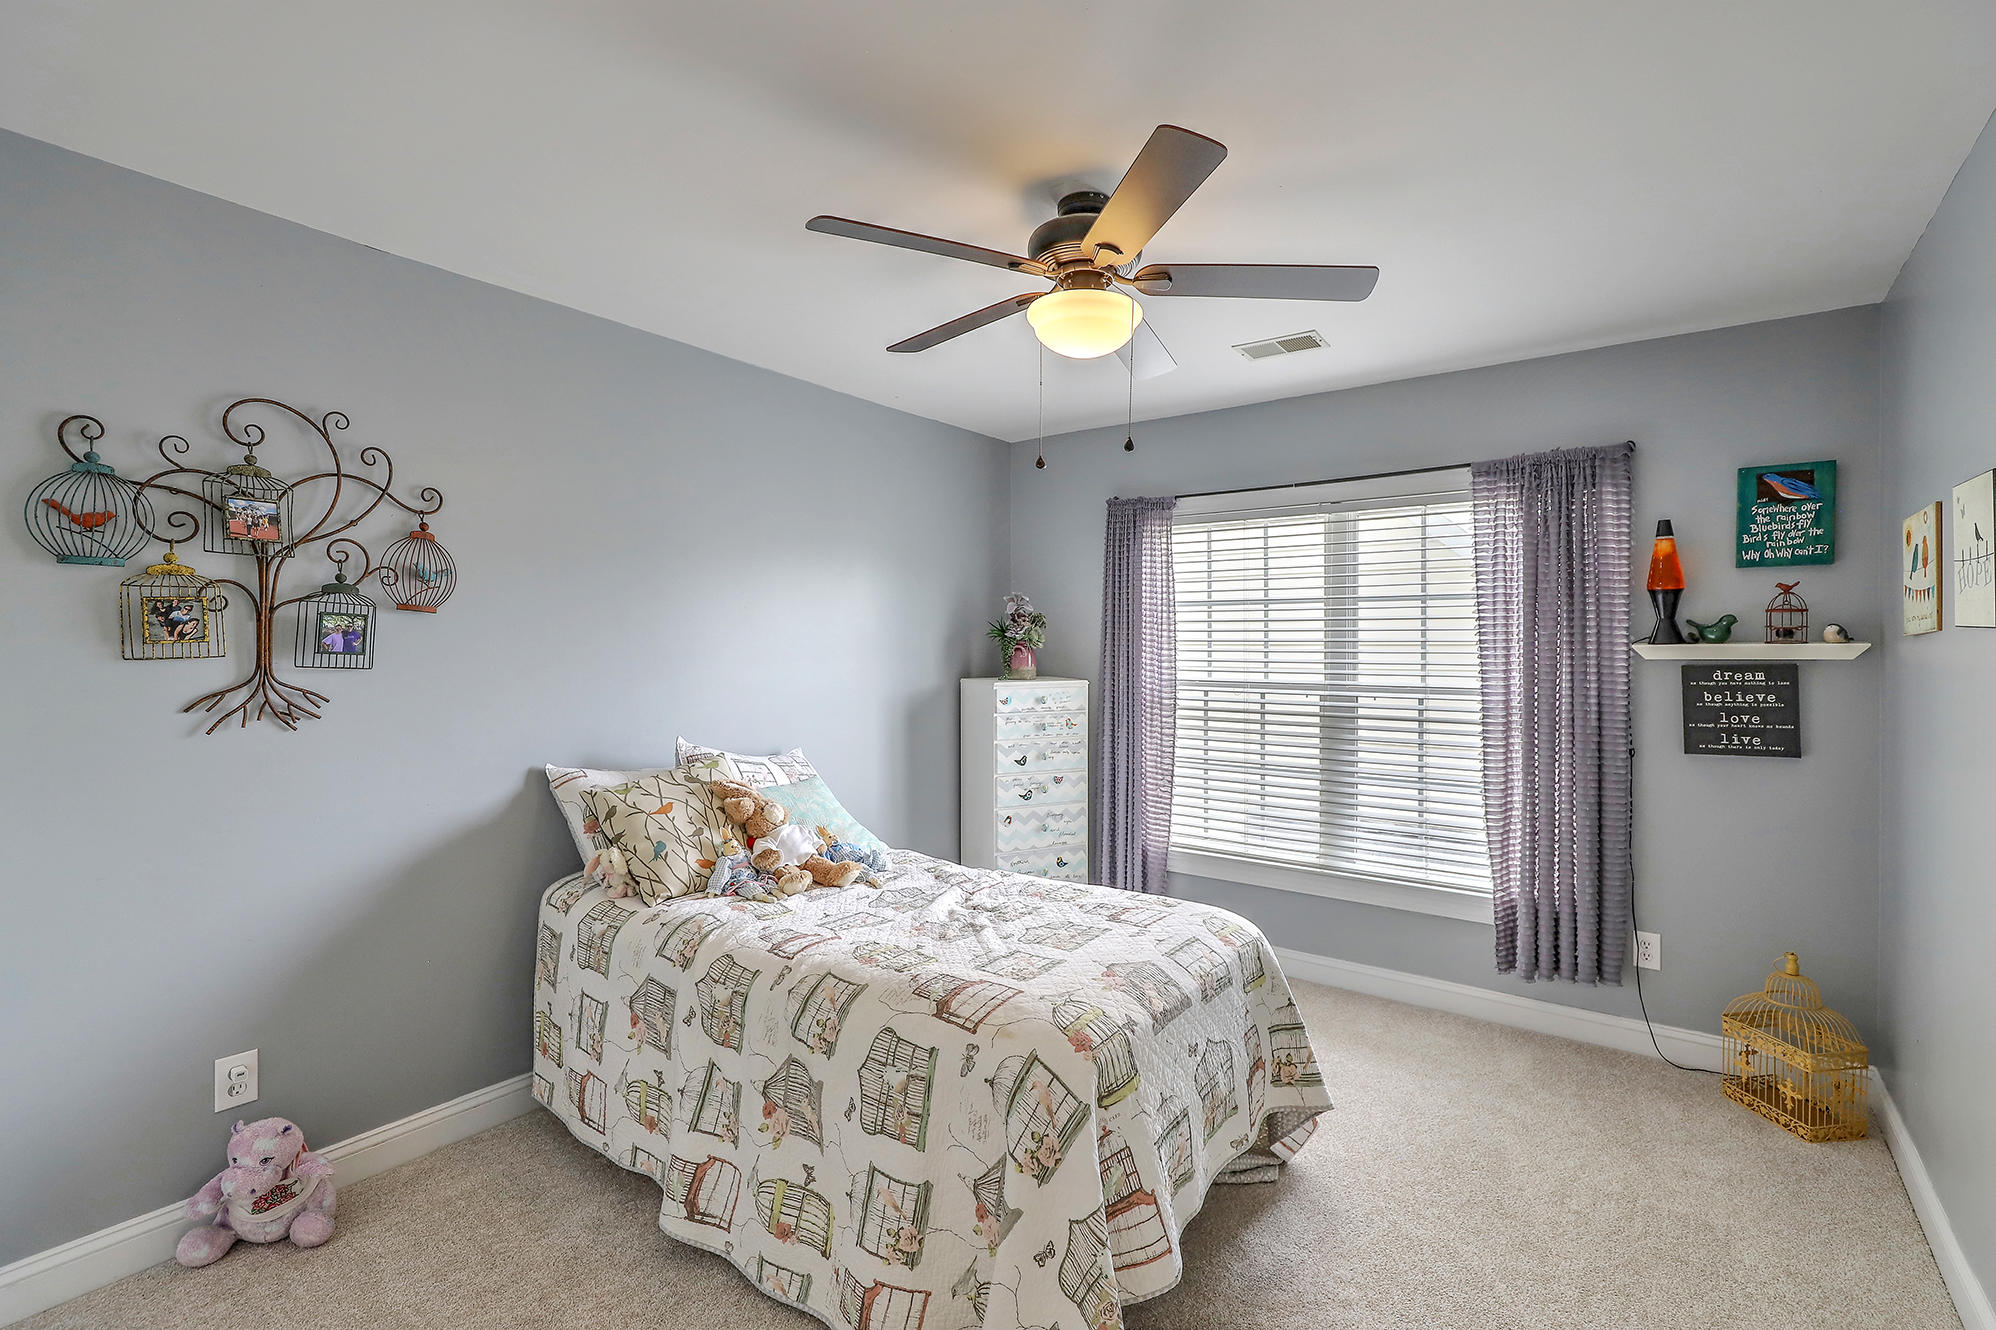 Rivertowne On The Wando Homes For Sale - 2182 Sandy Point Lane, Mount Pleasant, SC - 23